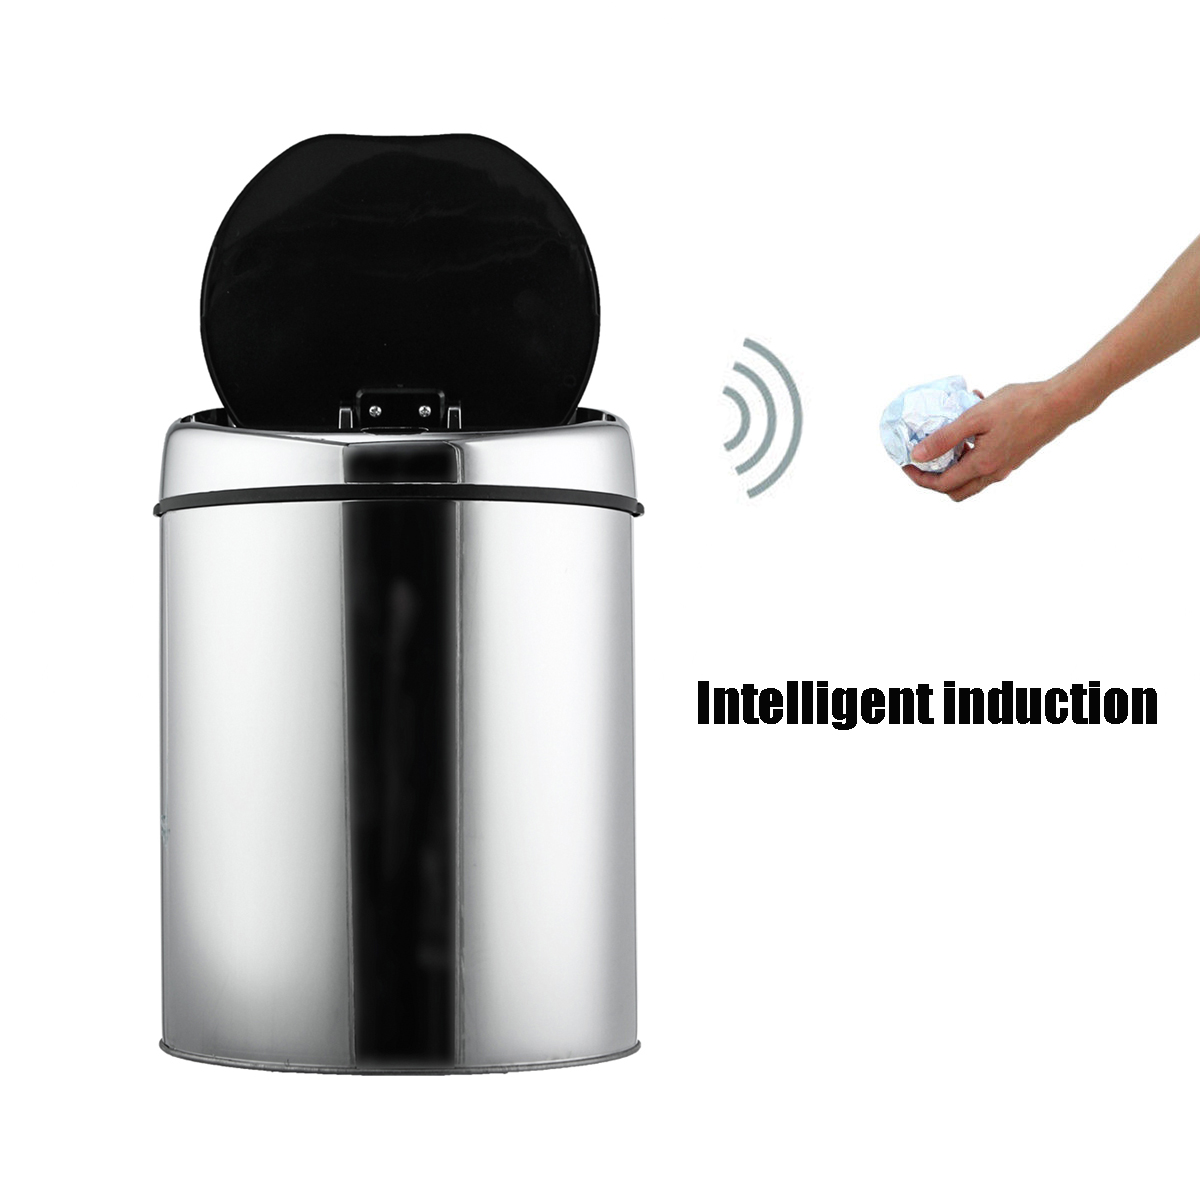 3/4/6L Stainless Steel Round Sensor Trash Can Touchless Motion Automatic Opening Recycler Waste Bins